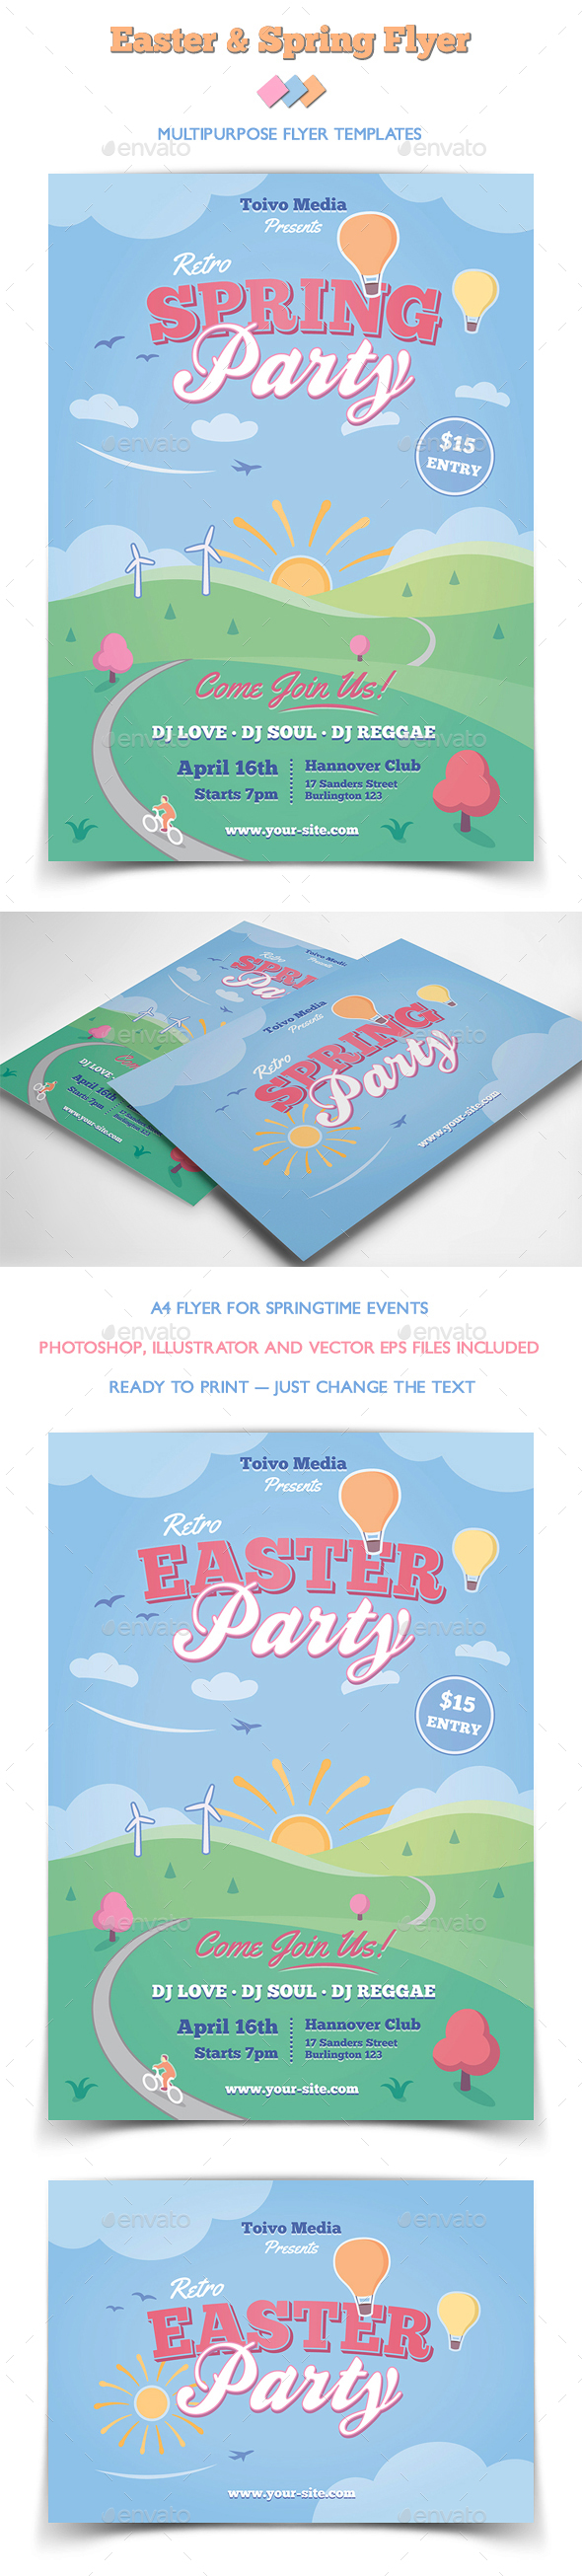 Easter and Spring Flyer - Miscellaneous Events